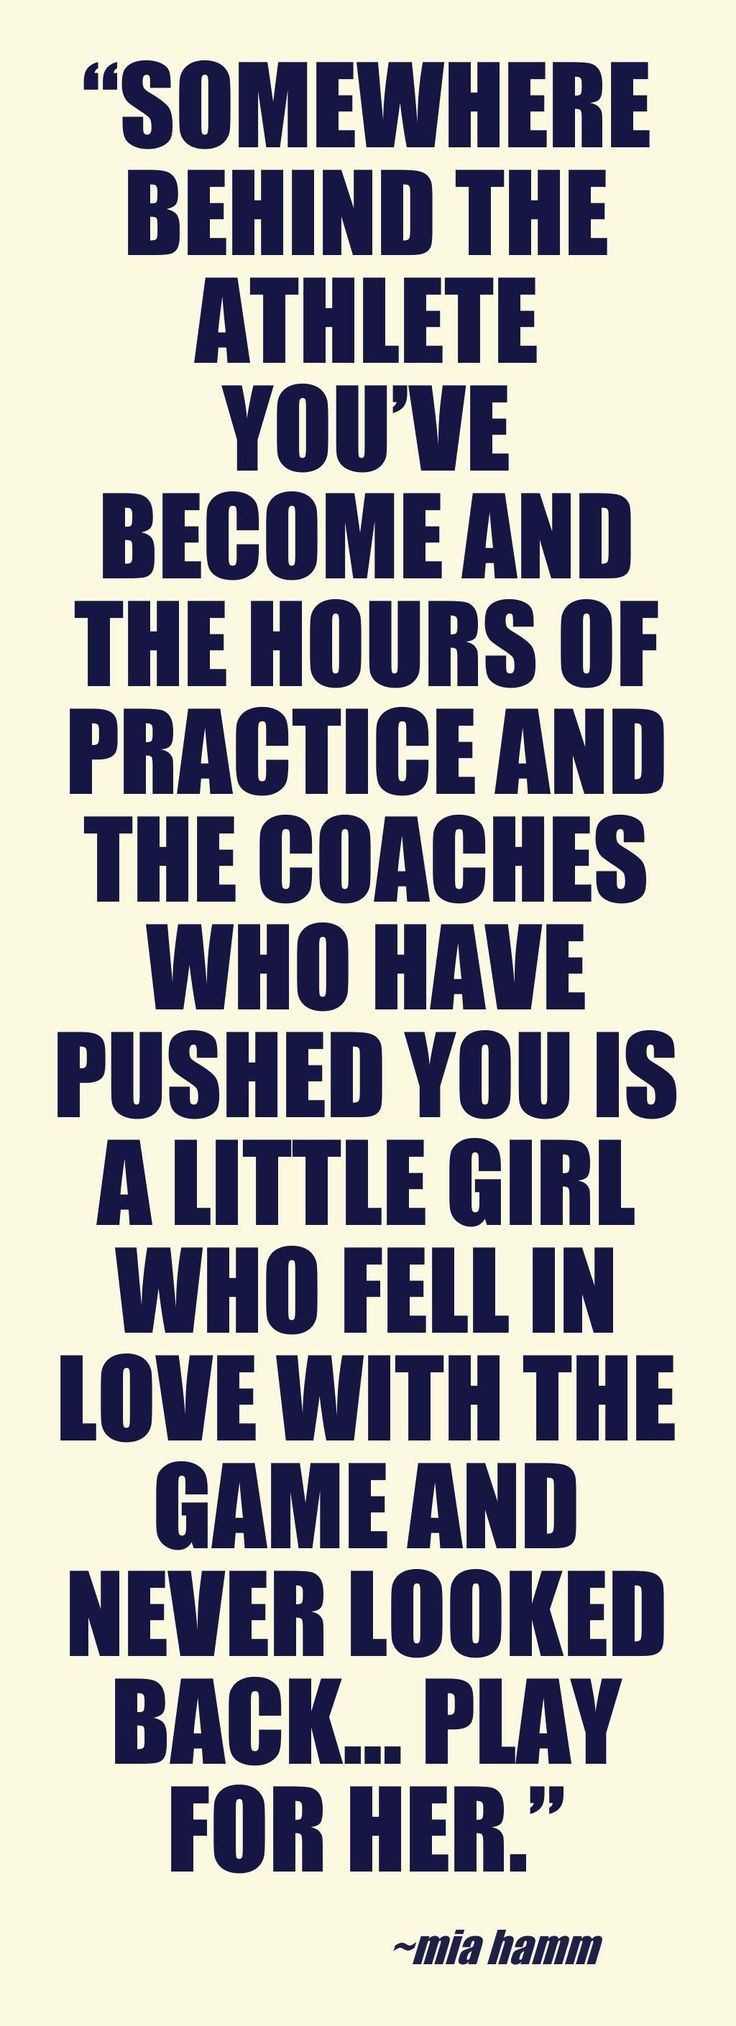 """Somewhere behind the athlete you've become and the hours of practice and the coaches who have pushed you is a little girl who fell in love with the game and never looked back… play for her."" - Mia Hamm"